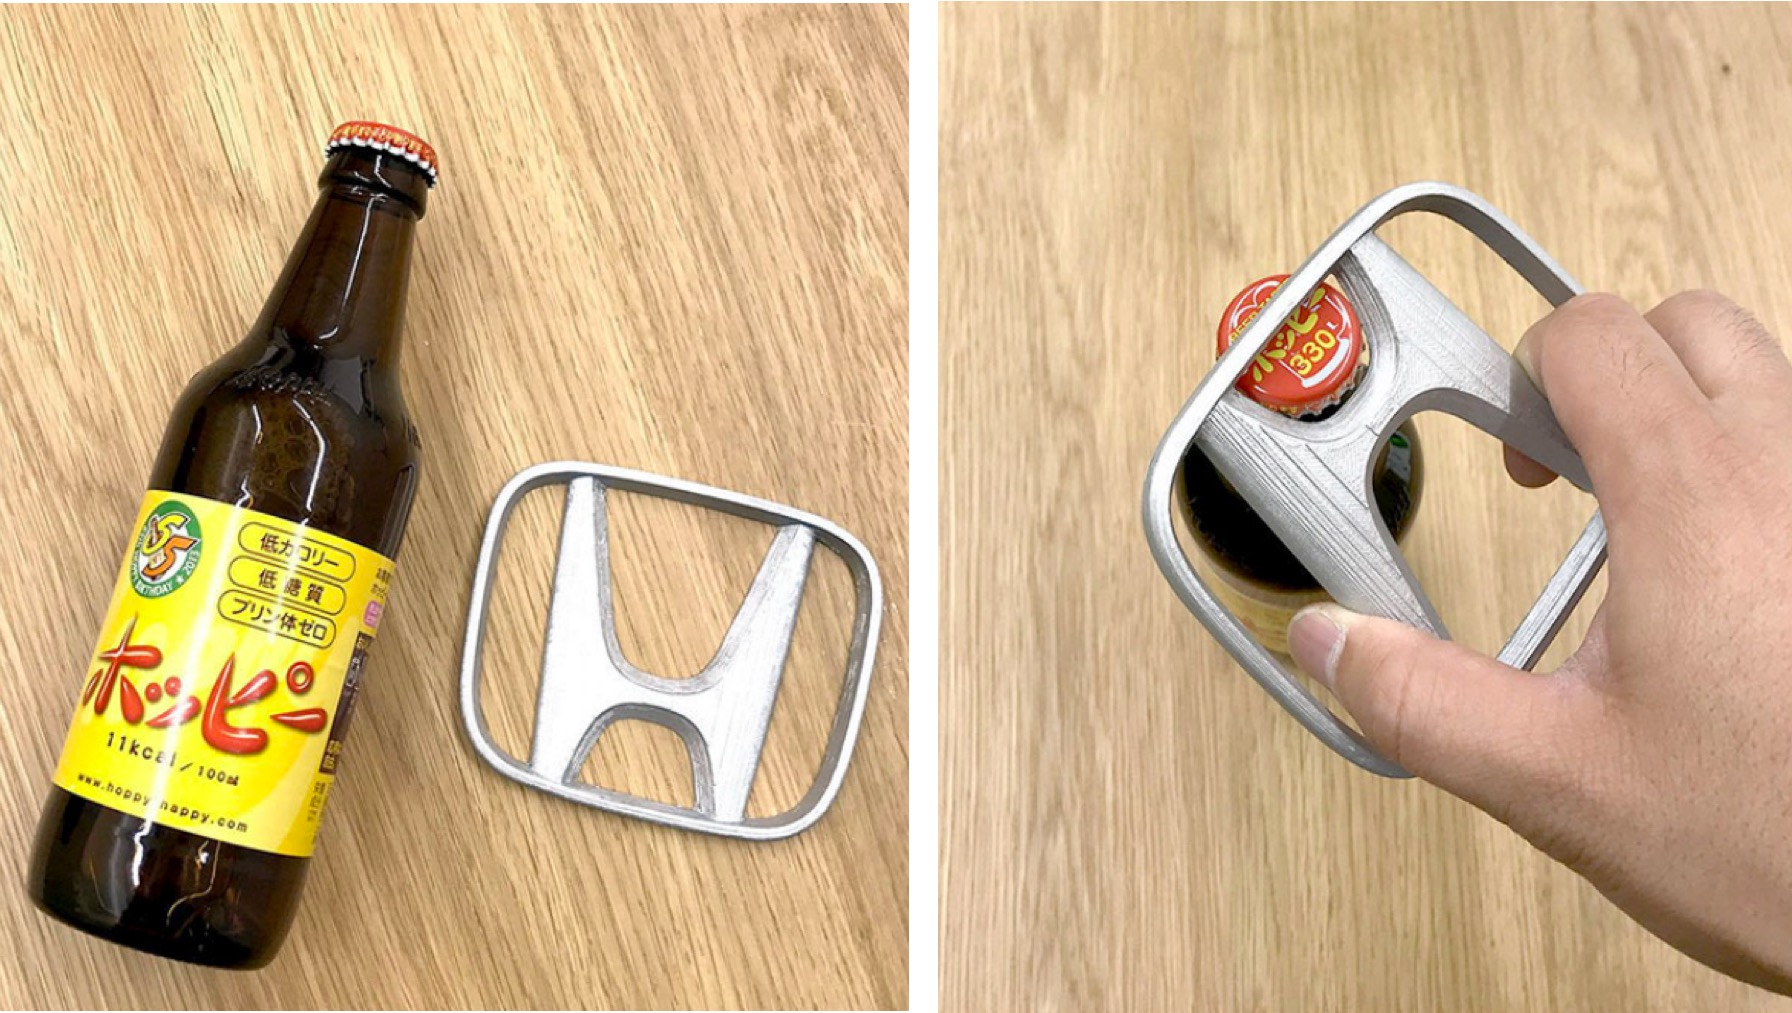 Designer Turns Famous Logos Into Useful Tools